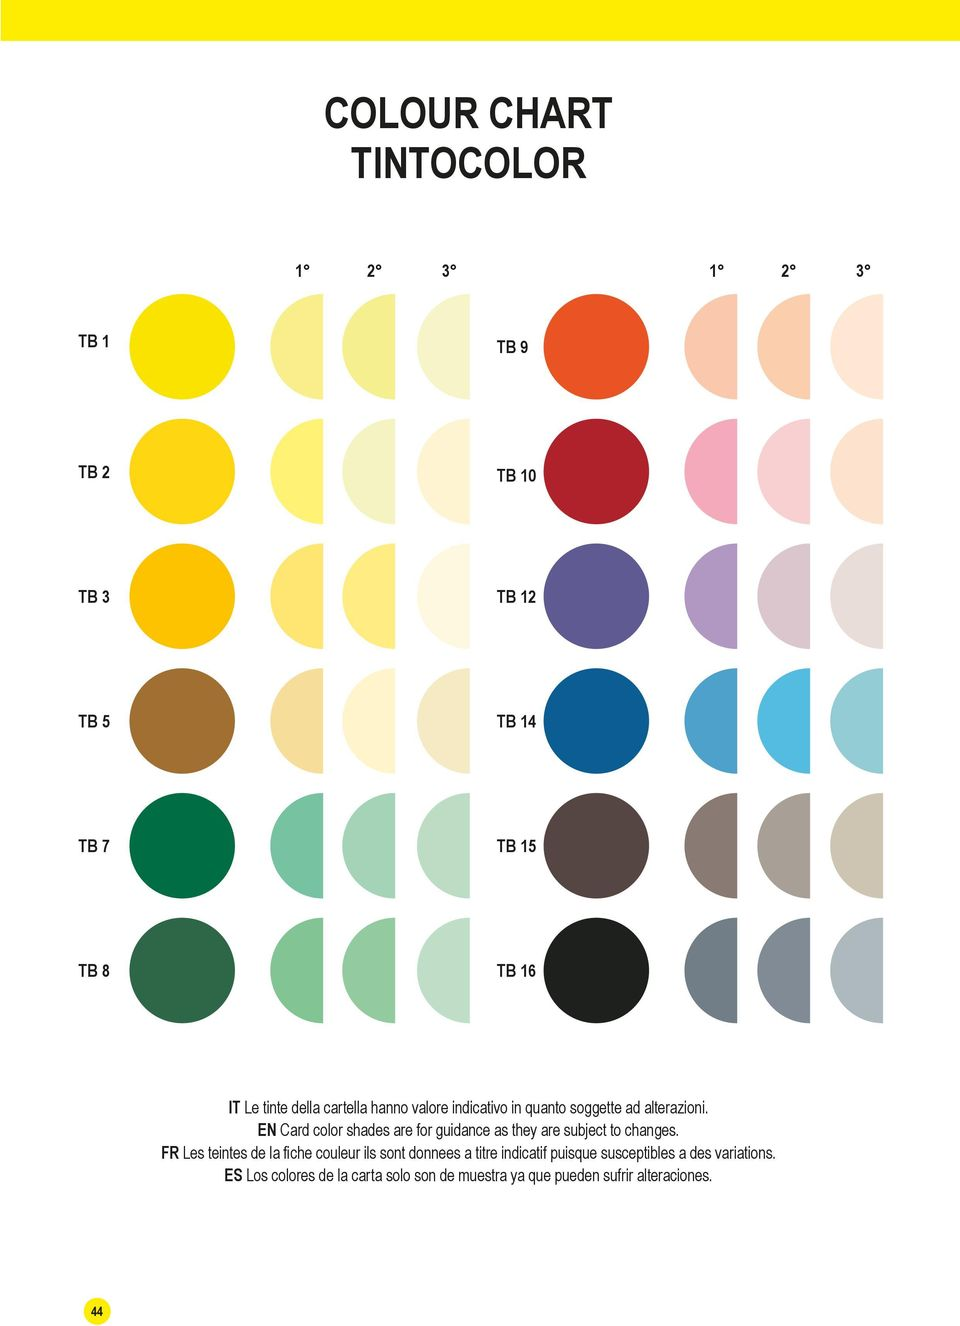 EN Card color shades are for guidance as they are subject to changes.